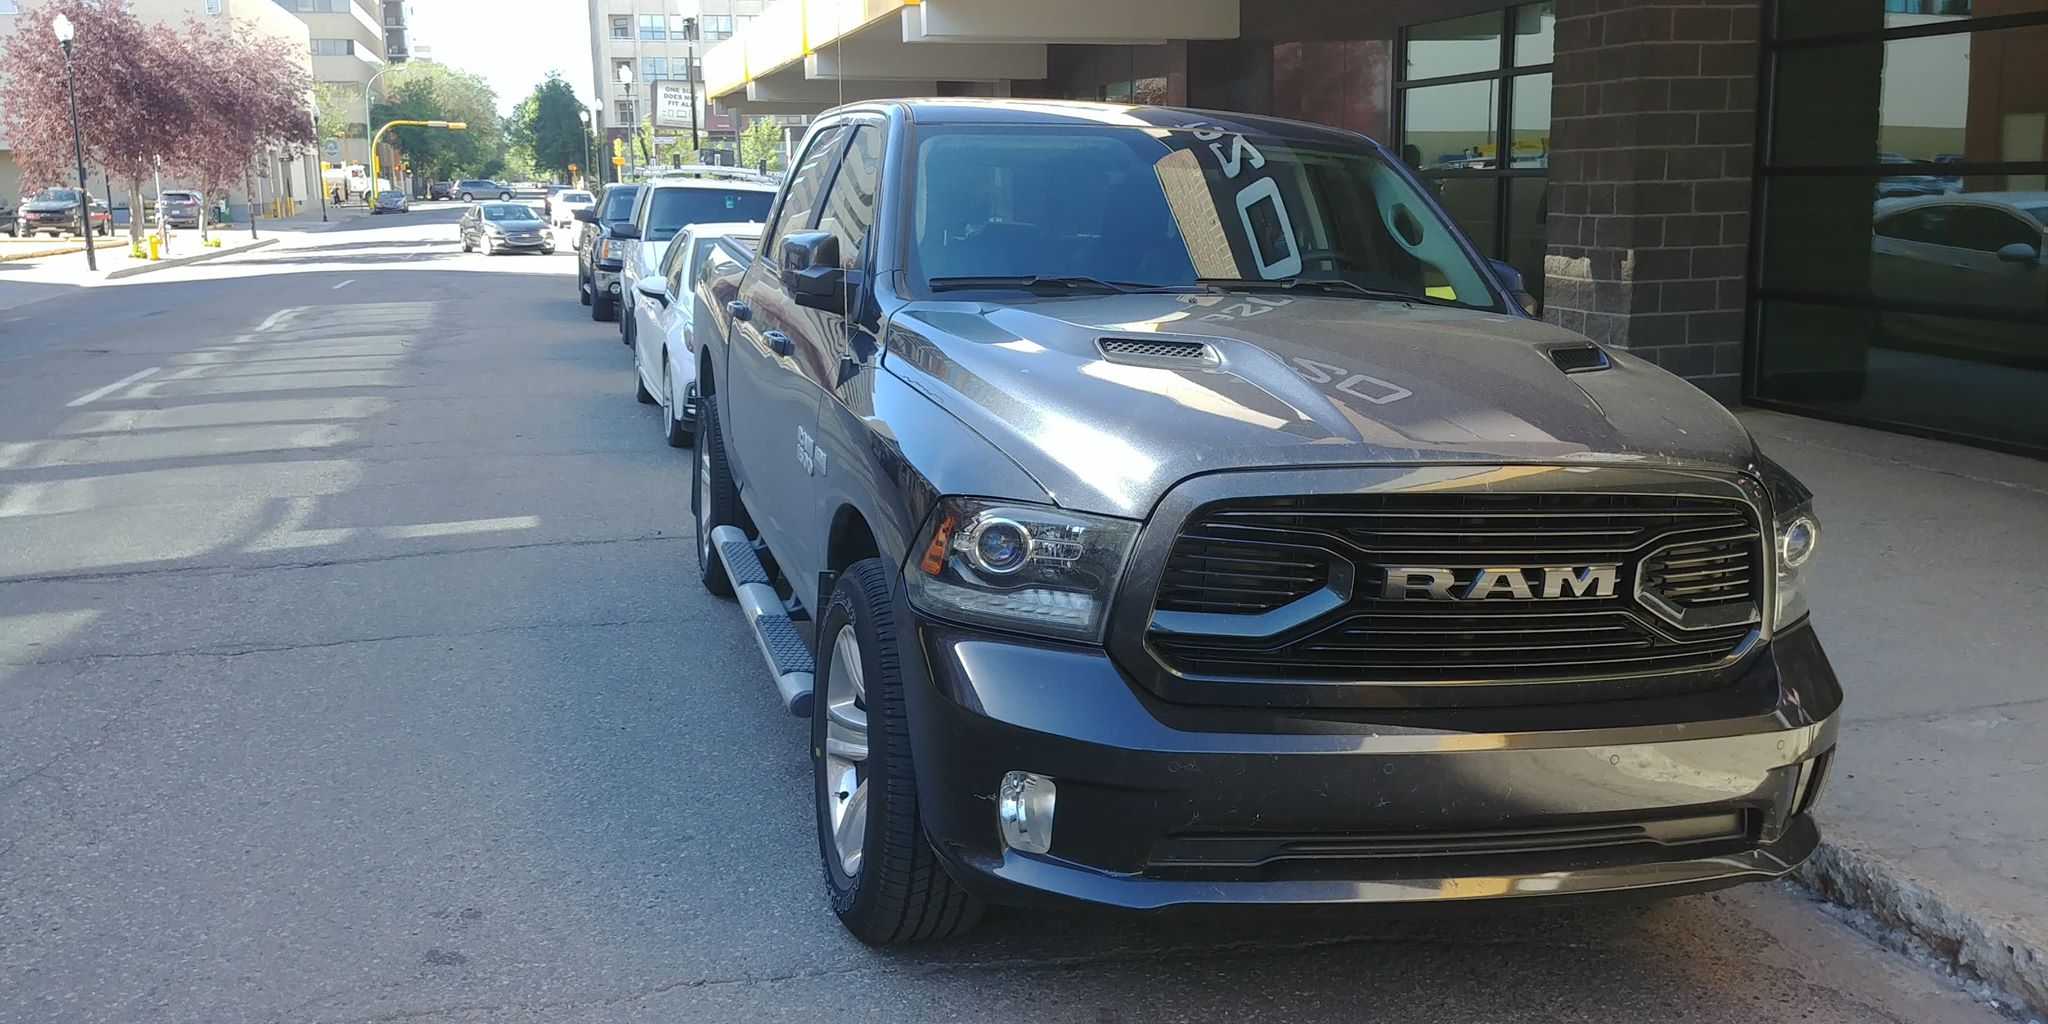 New vehicle sales on the rise in Saskatchewan